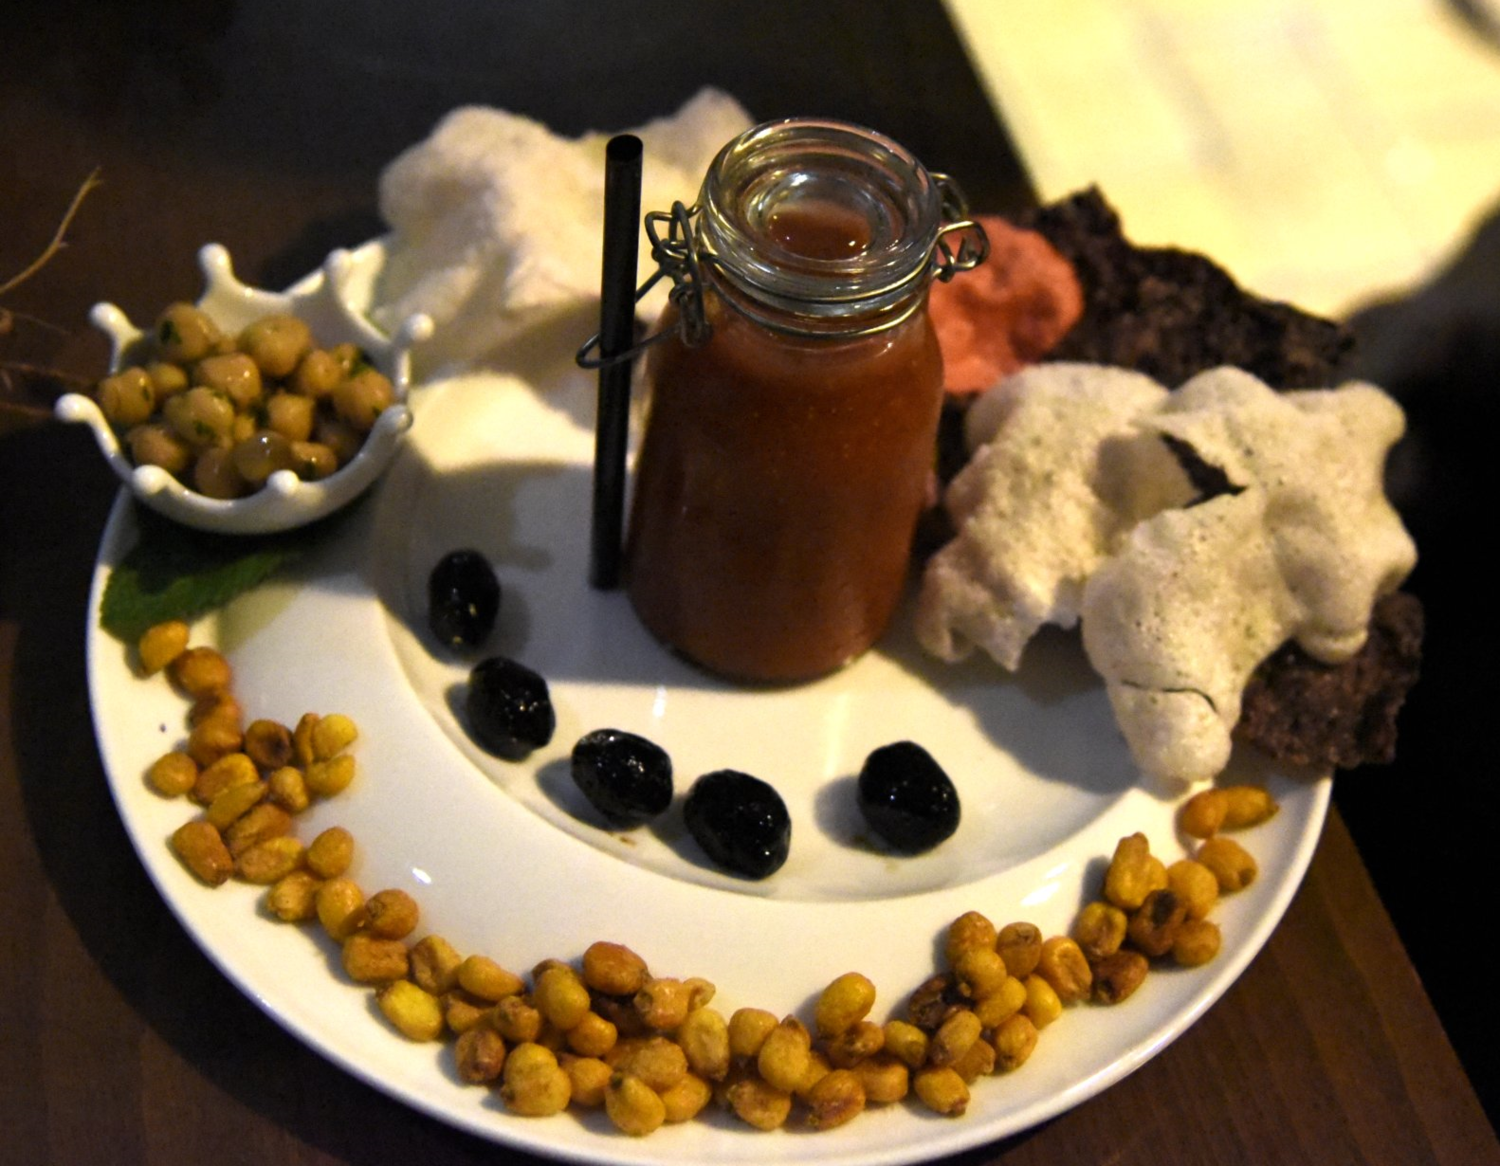 Saveurs de France Bloody Mary with vodka, mustard seed, tomato juice, salt and white pepper